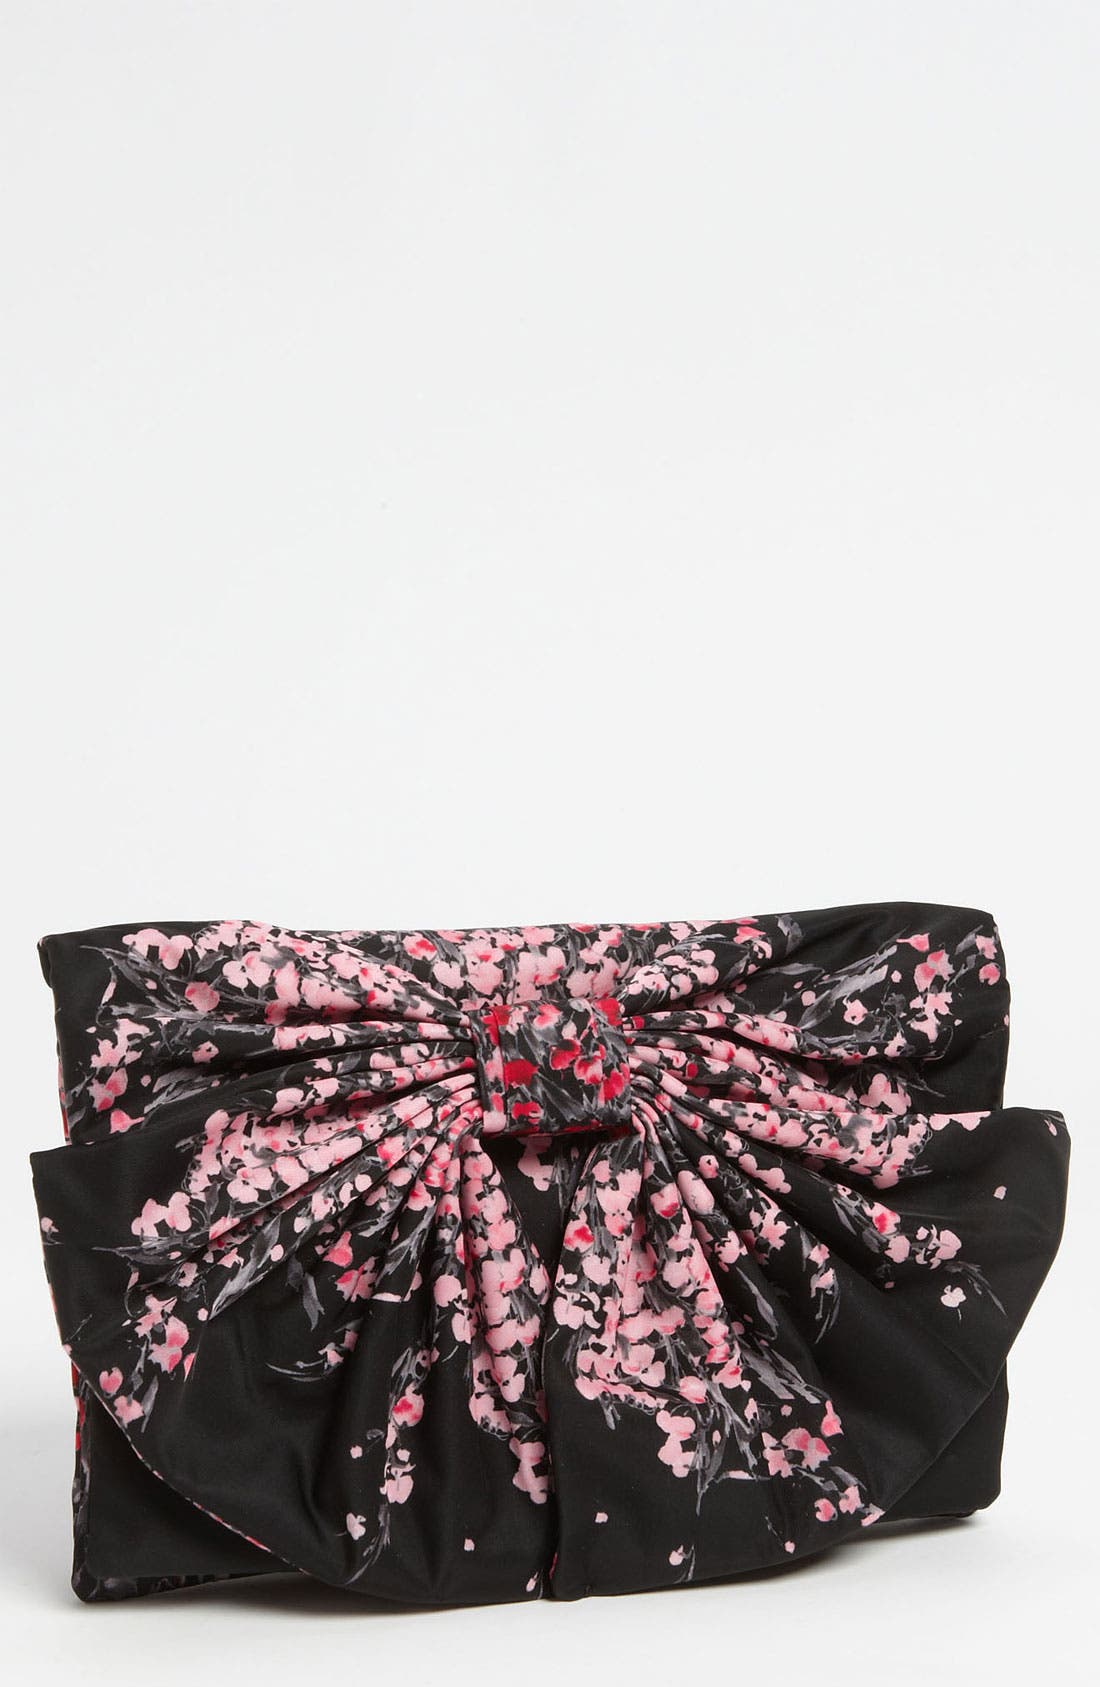 Alternate Image 1 Selected - RED Valentino 'Lily of the Valley' Bow Clutch